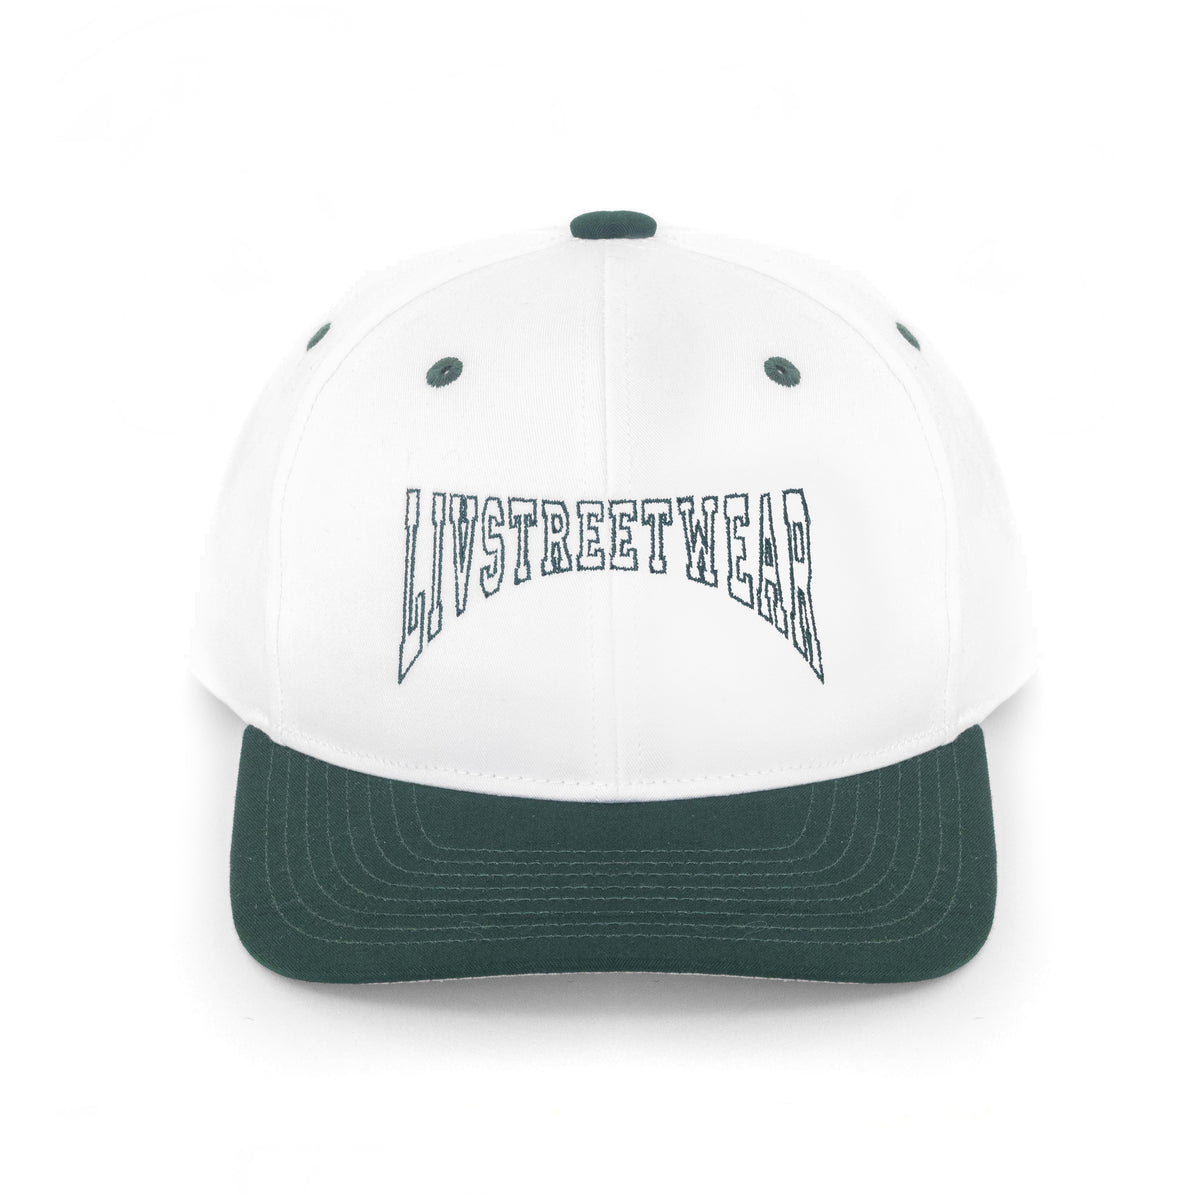 Green and White Snapback